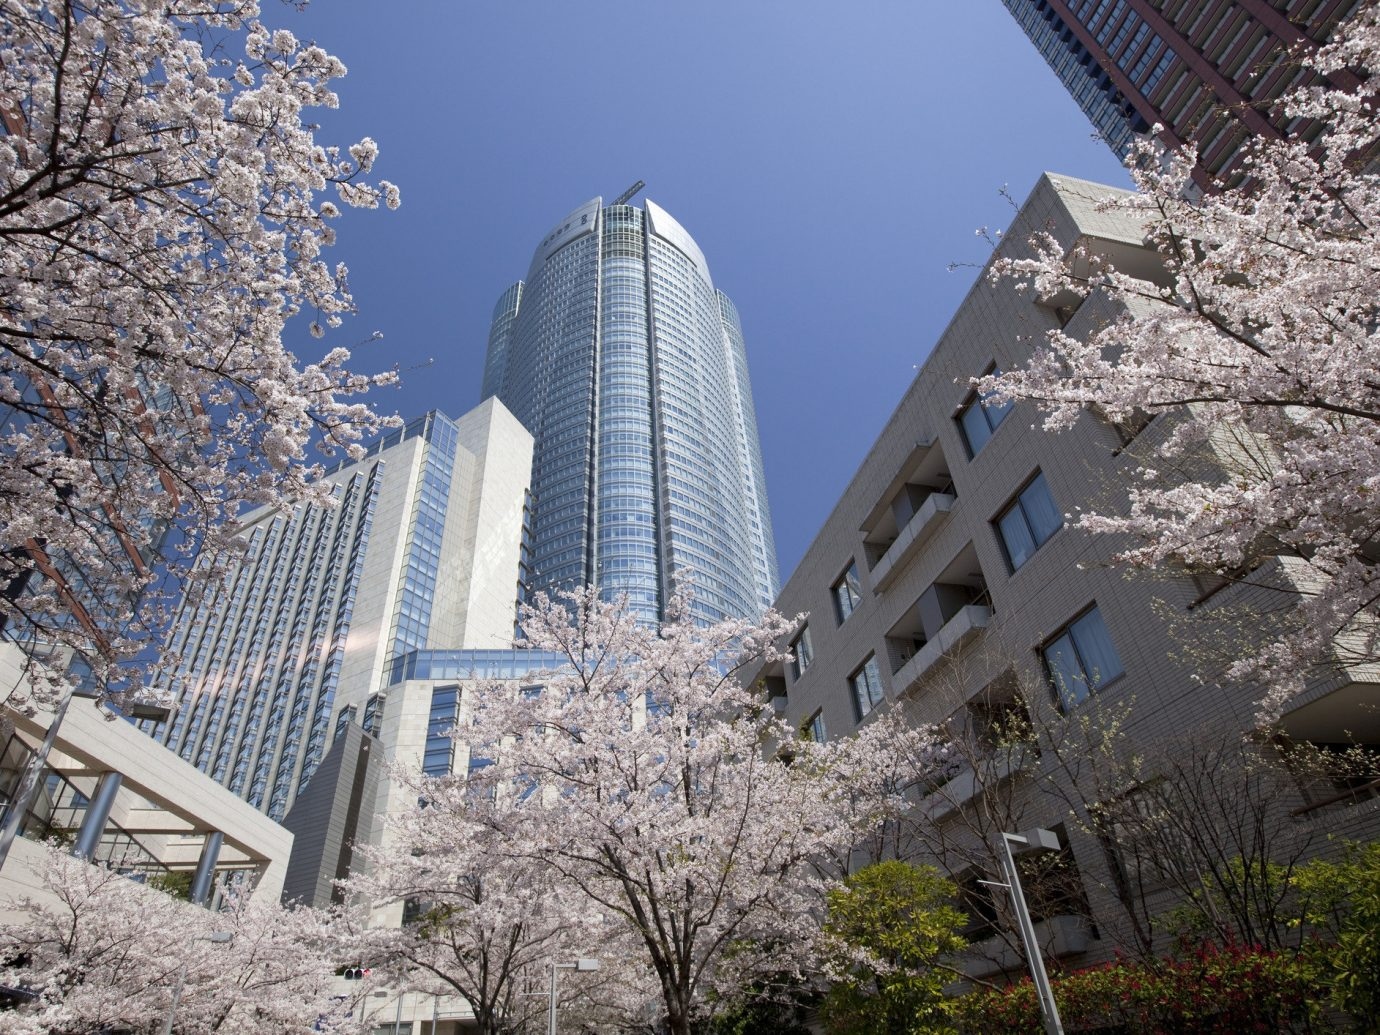 Trip Ideas tree outdoor sky flower building plant cherry blossom urban area City Winter spring season Downtown blossom skyscraper cityscape snow tower